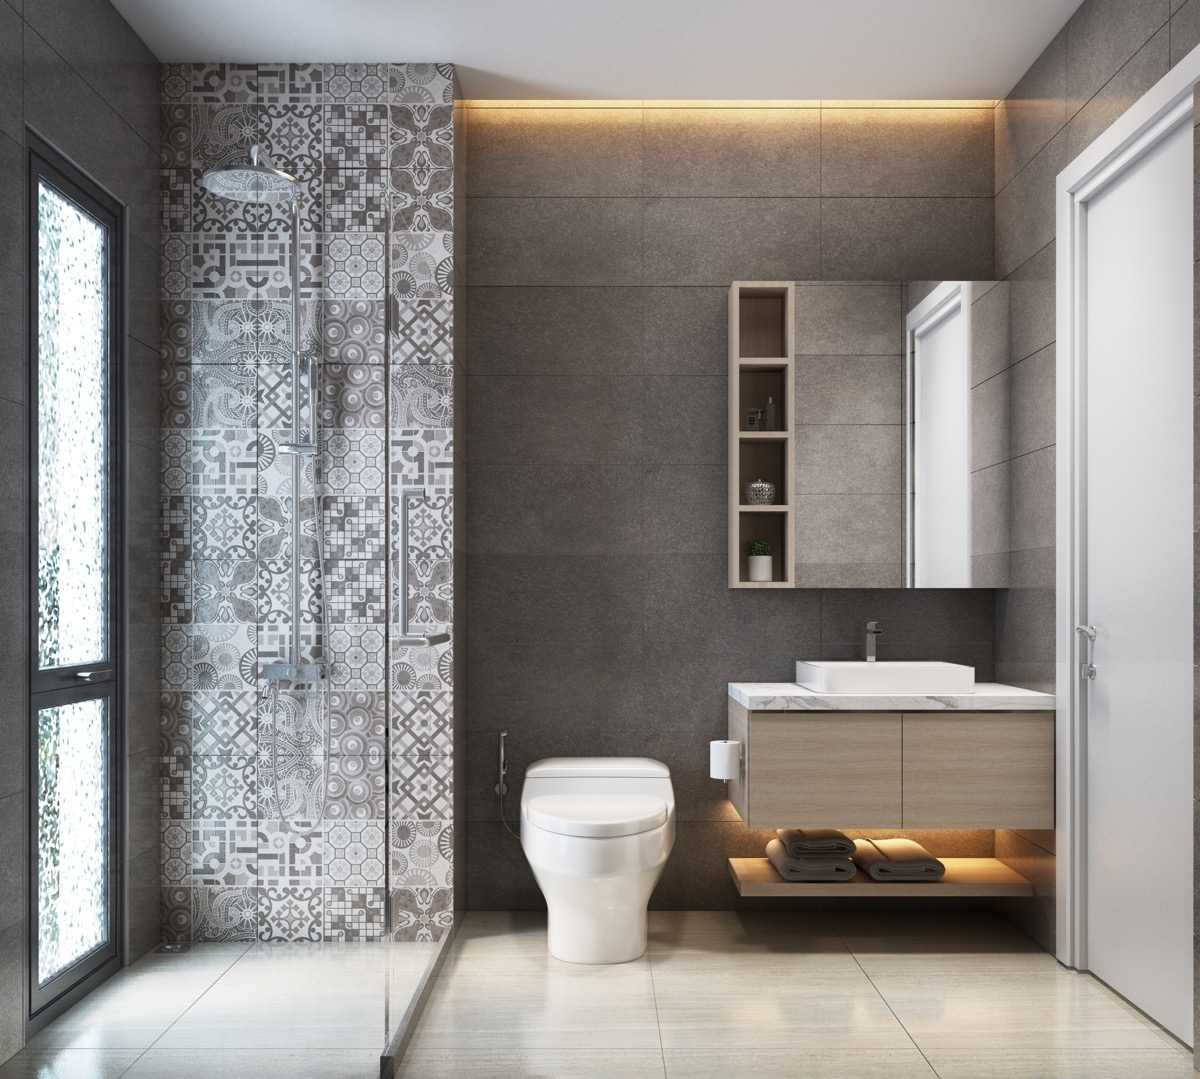 Bathroom Tile Ideas: 36 Modern Grey & White Bathrooms That Relax Mind Body & Soul